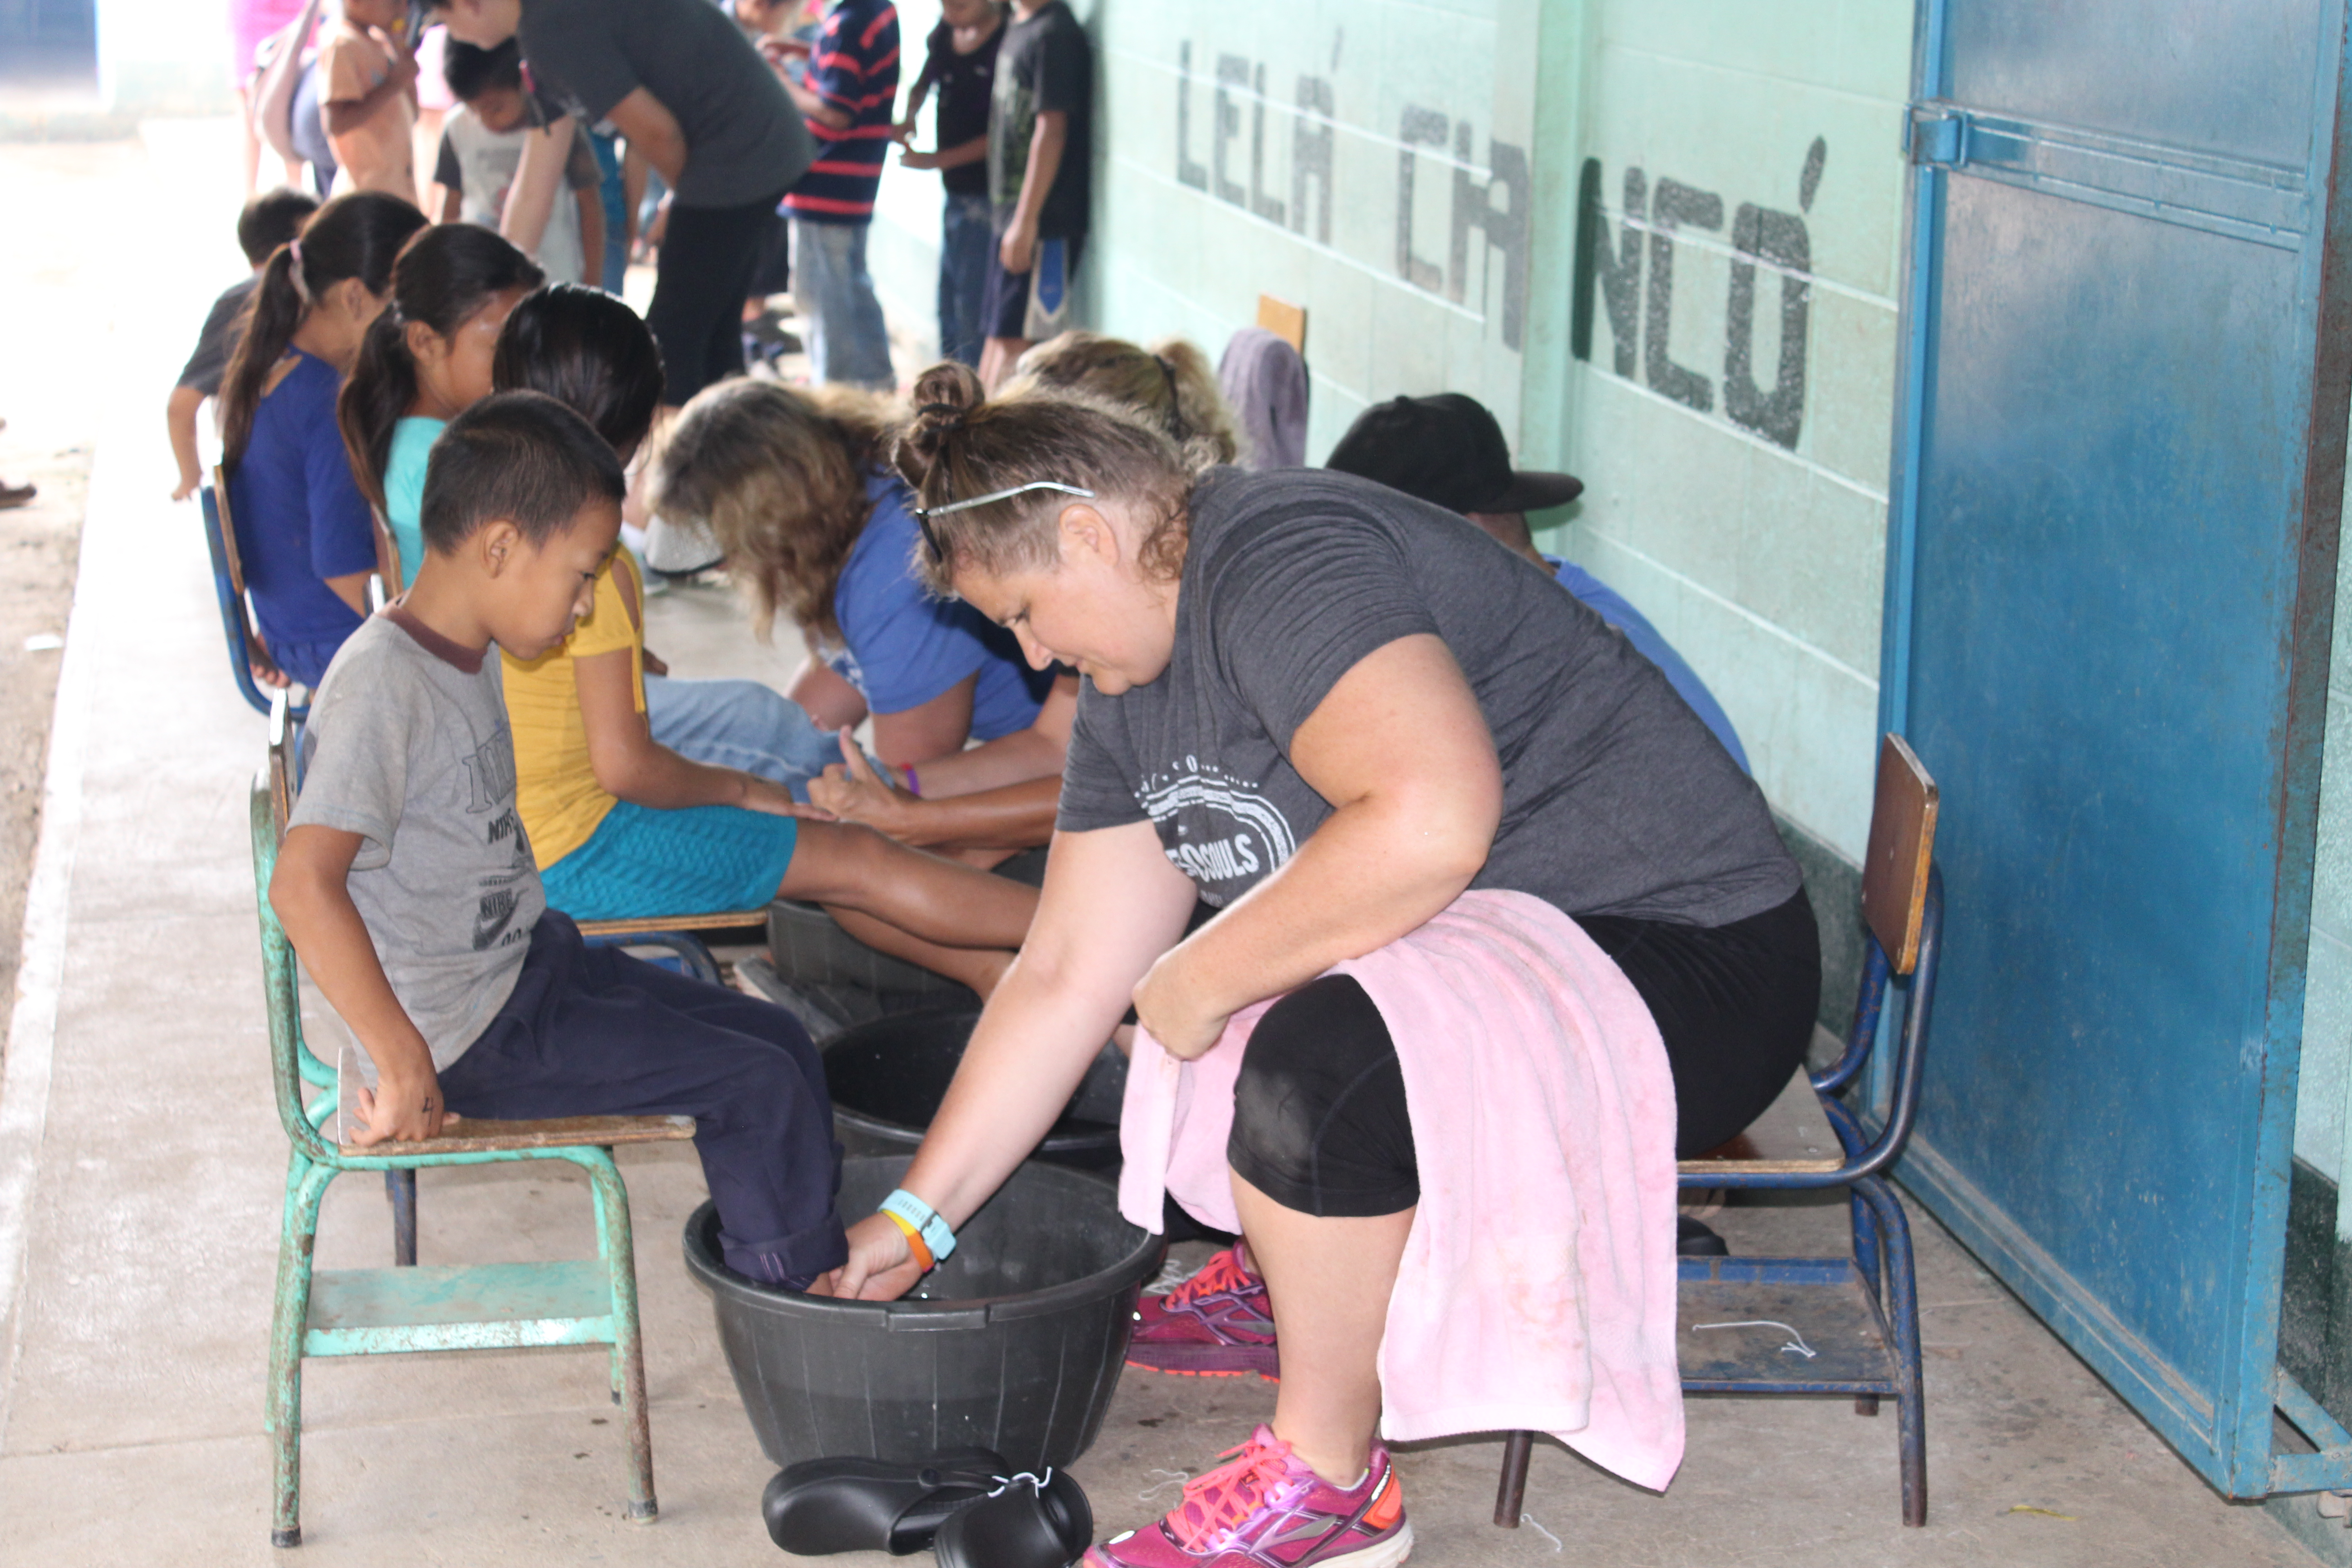 Angie and Soles4Souls distributing shoes in Guatemala this past October